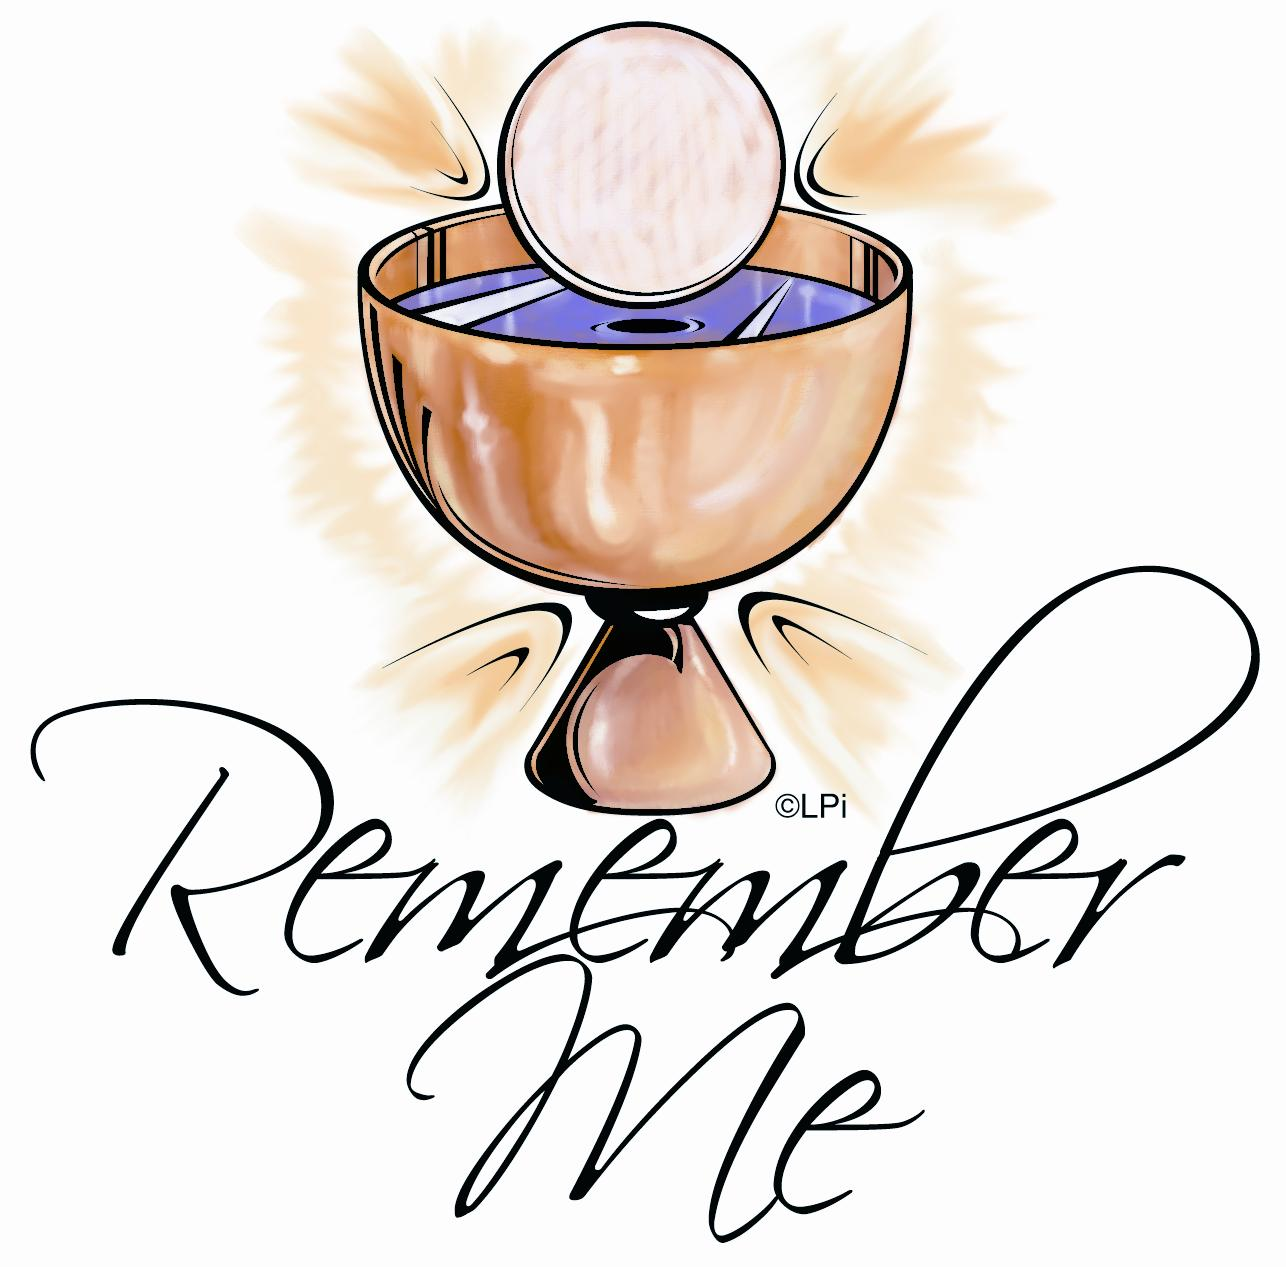 Clip Art Church Eucharist Clipart - Clipart Kid